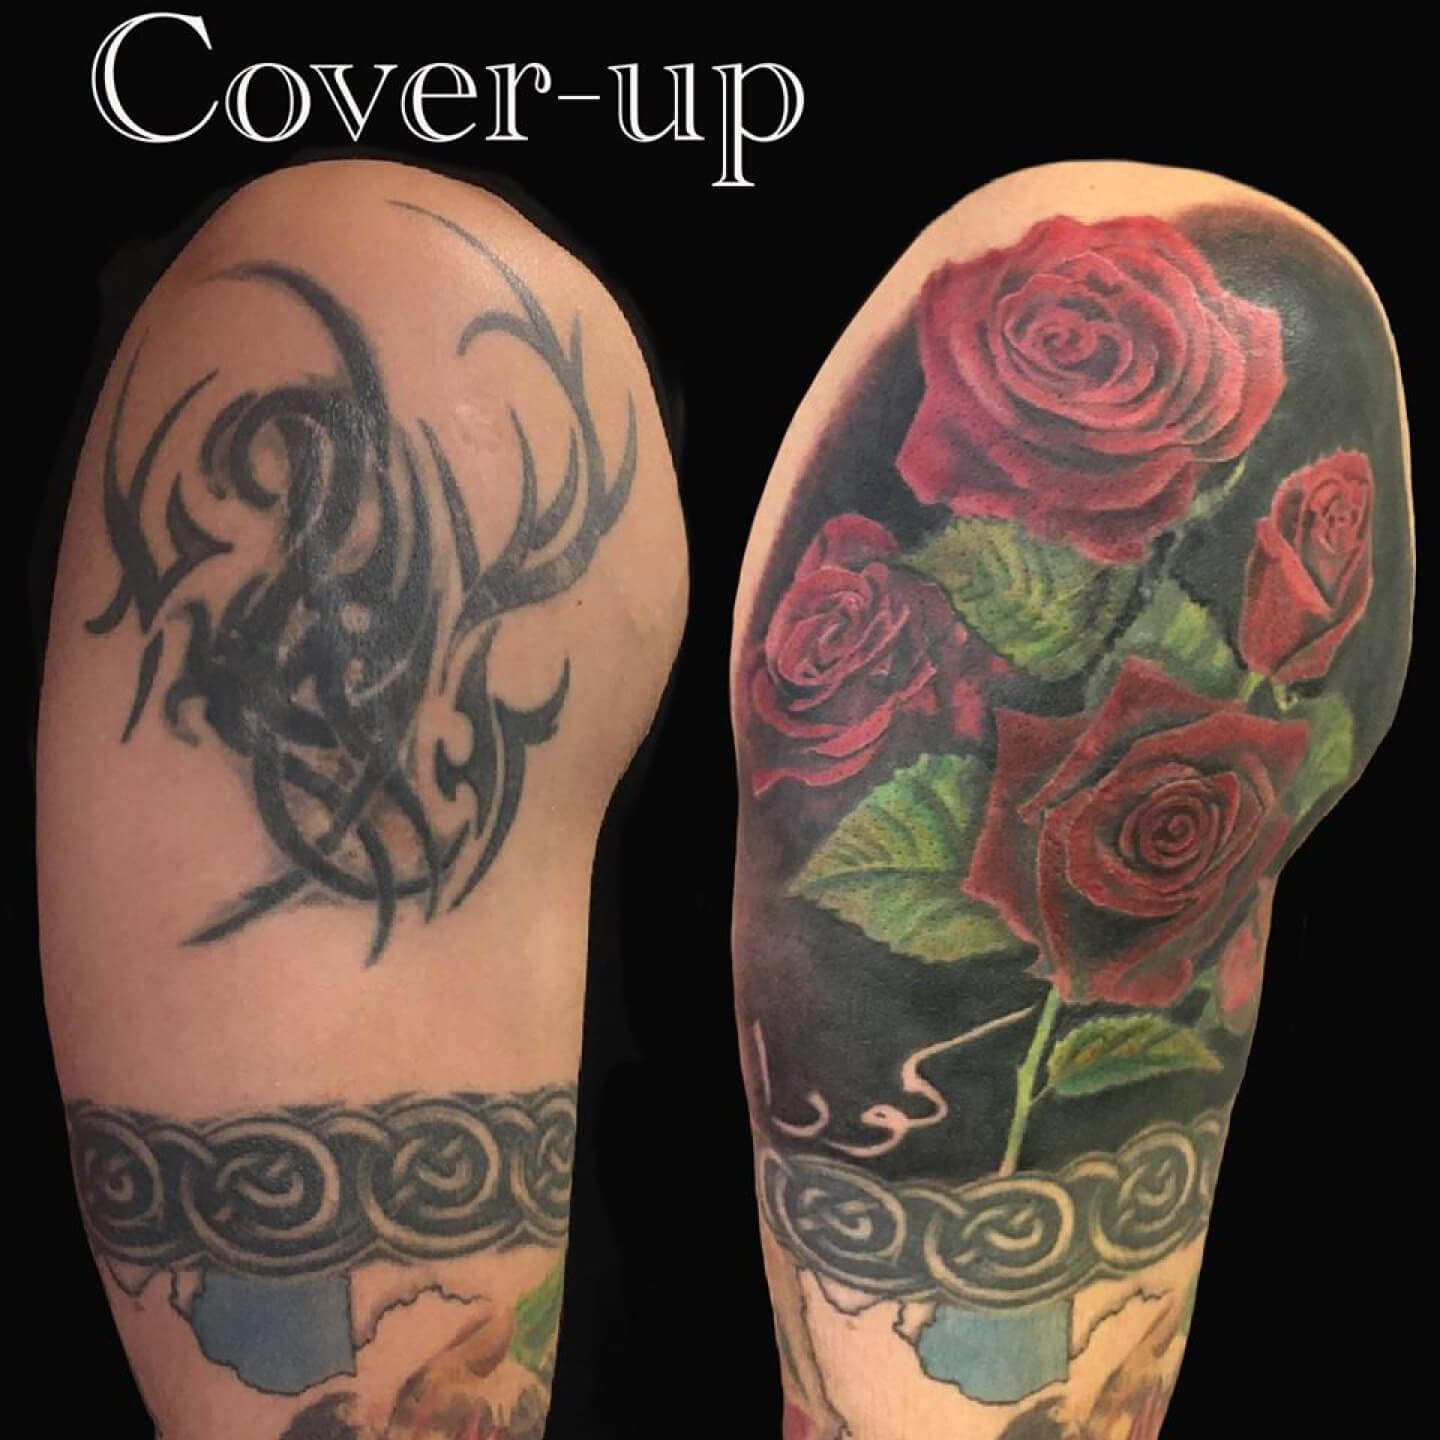 Scar Tribal Cover Up Tattoo Roses Name Lettering Colour Color Realism Realistic Upperarm Sleeve Drenthe Tattooshop Assen Blueroottattoo